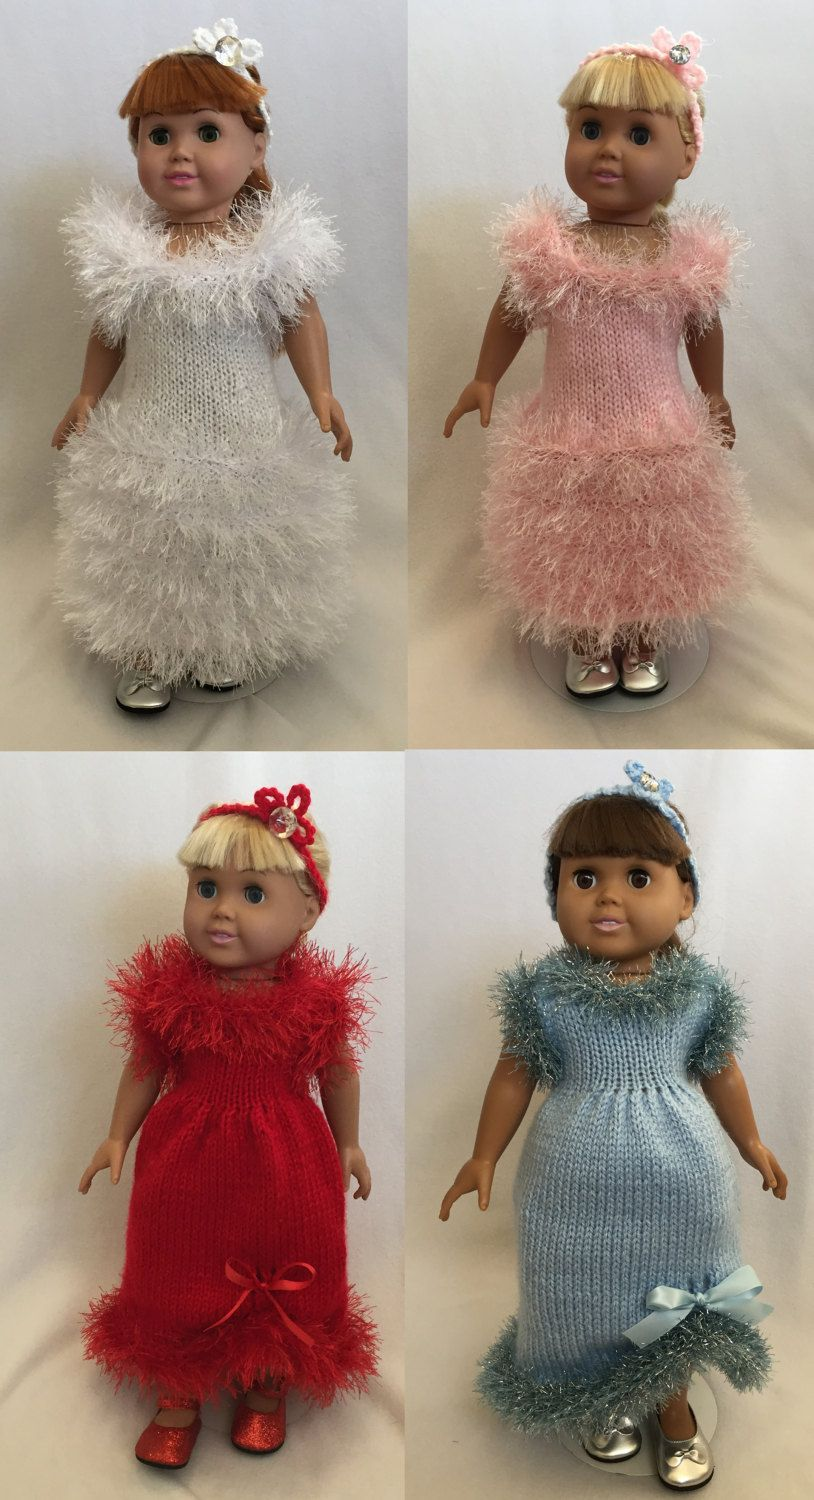 Holiday Evening Gowns, Knitting Patterns for 18 inch Dolls